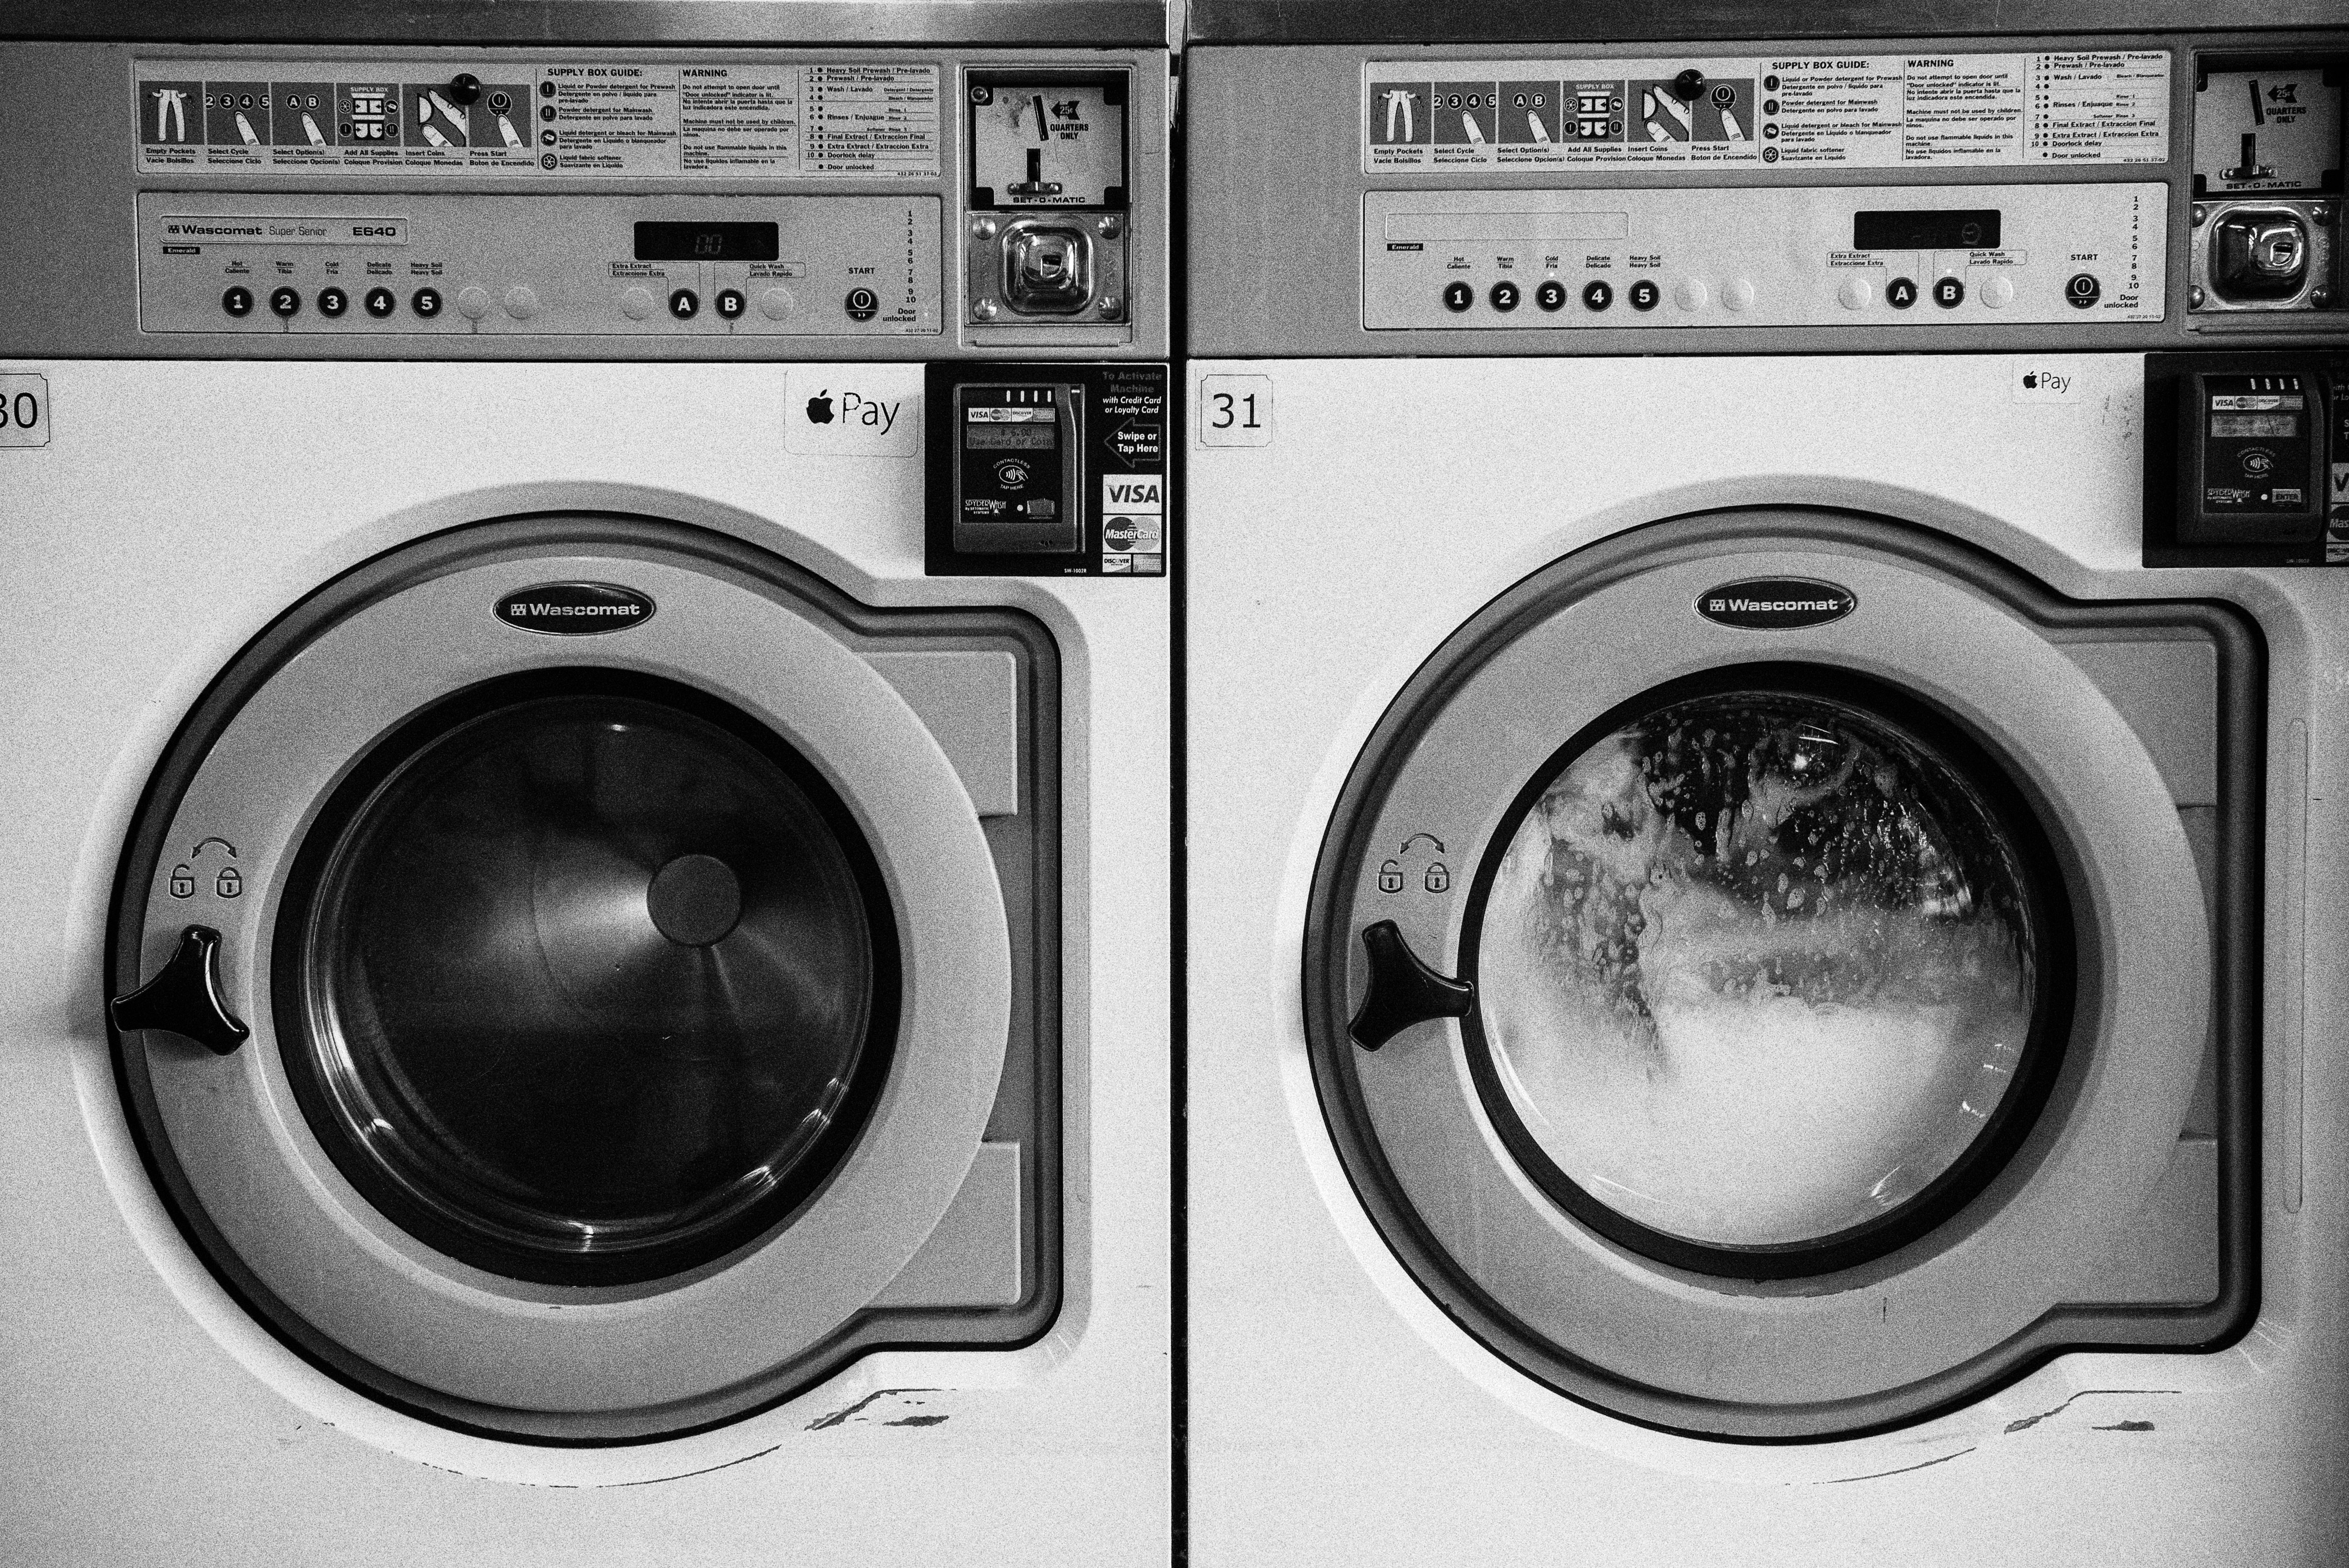 greyscale photo of washer and dryer laundry machines